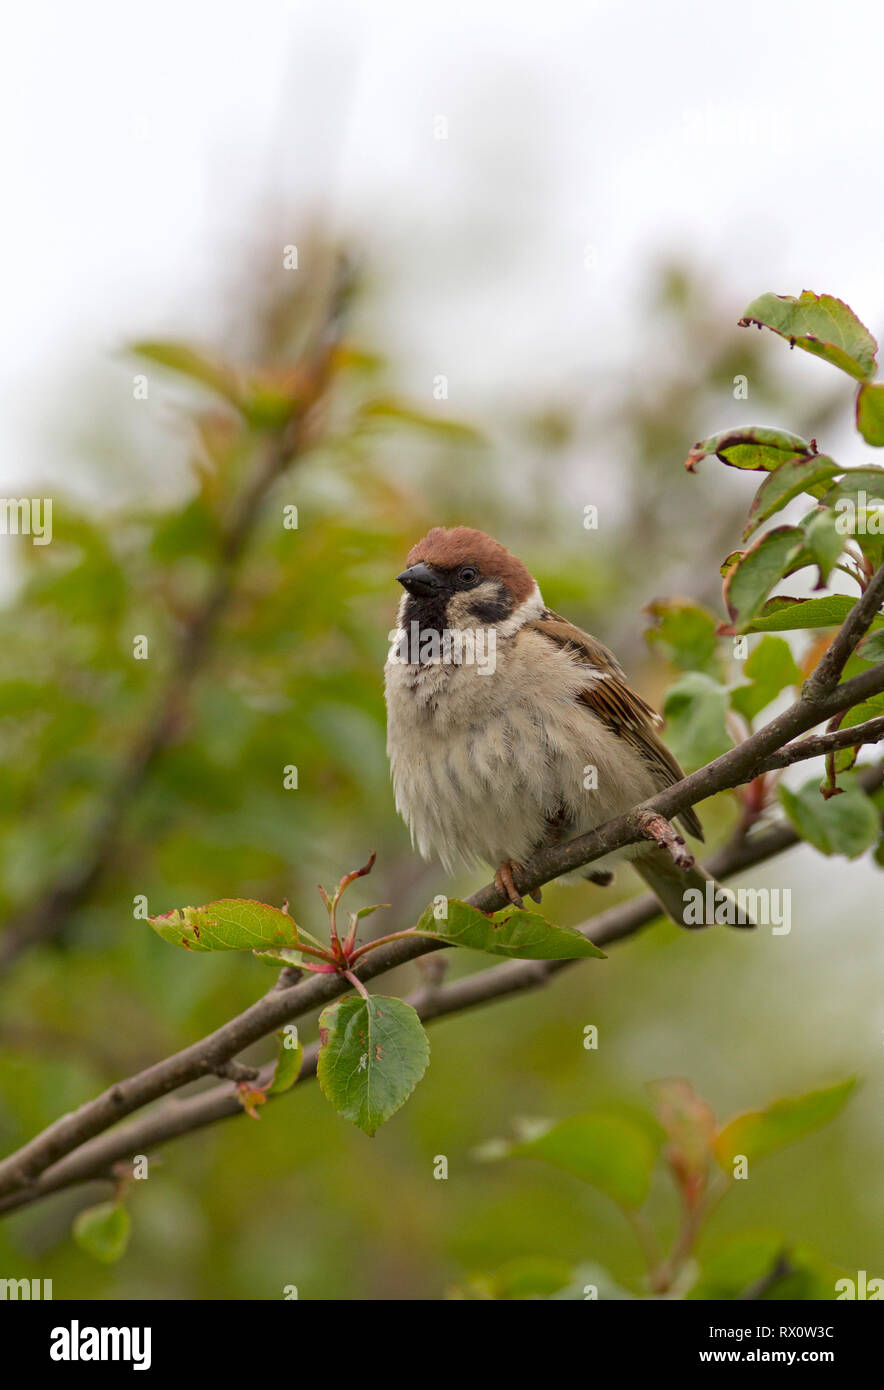 Tree Sparrow, Passer montanus, portrait of single adult perched in tree. Taken June,  Bempton, Yorkshire, UK. - Stock Image